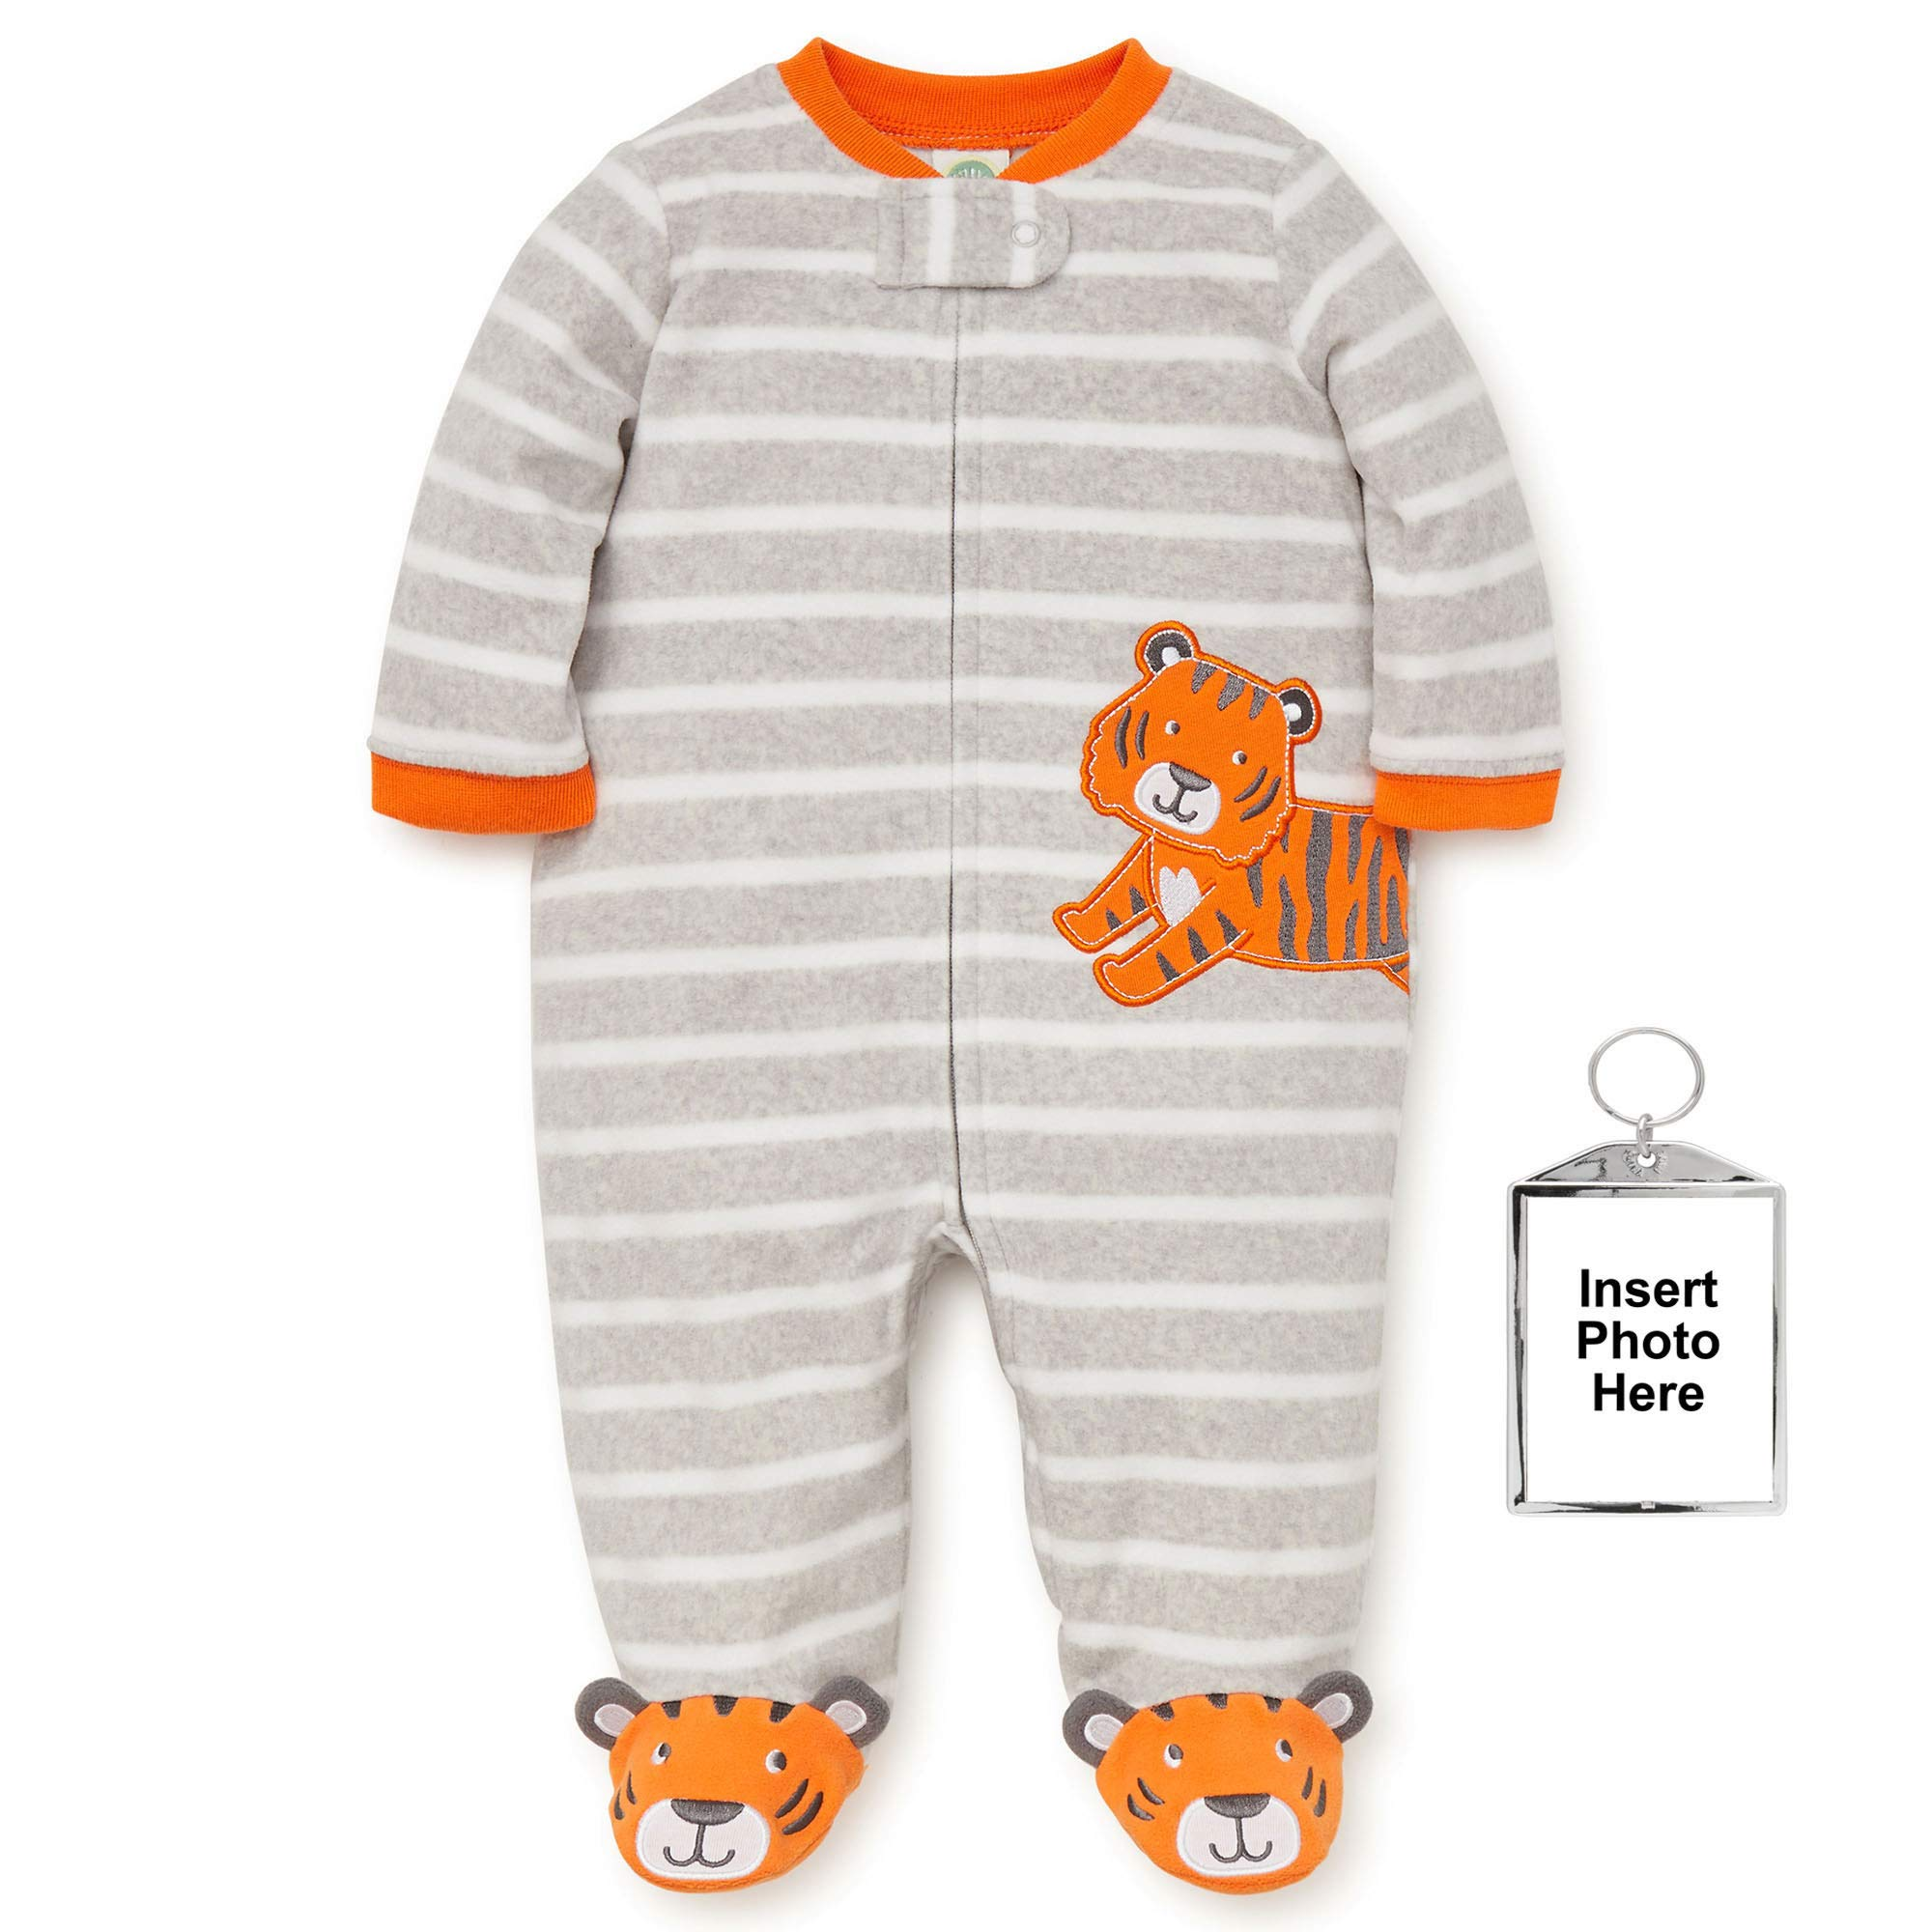 0d52e38ba9 Amazon.com  Little Me Winter Fleece Baby Pajamas Footed Blanket Sleeper  Footie Orange Tiger 18 Month  Baby